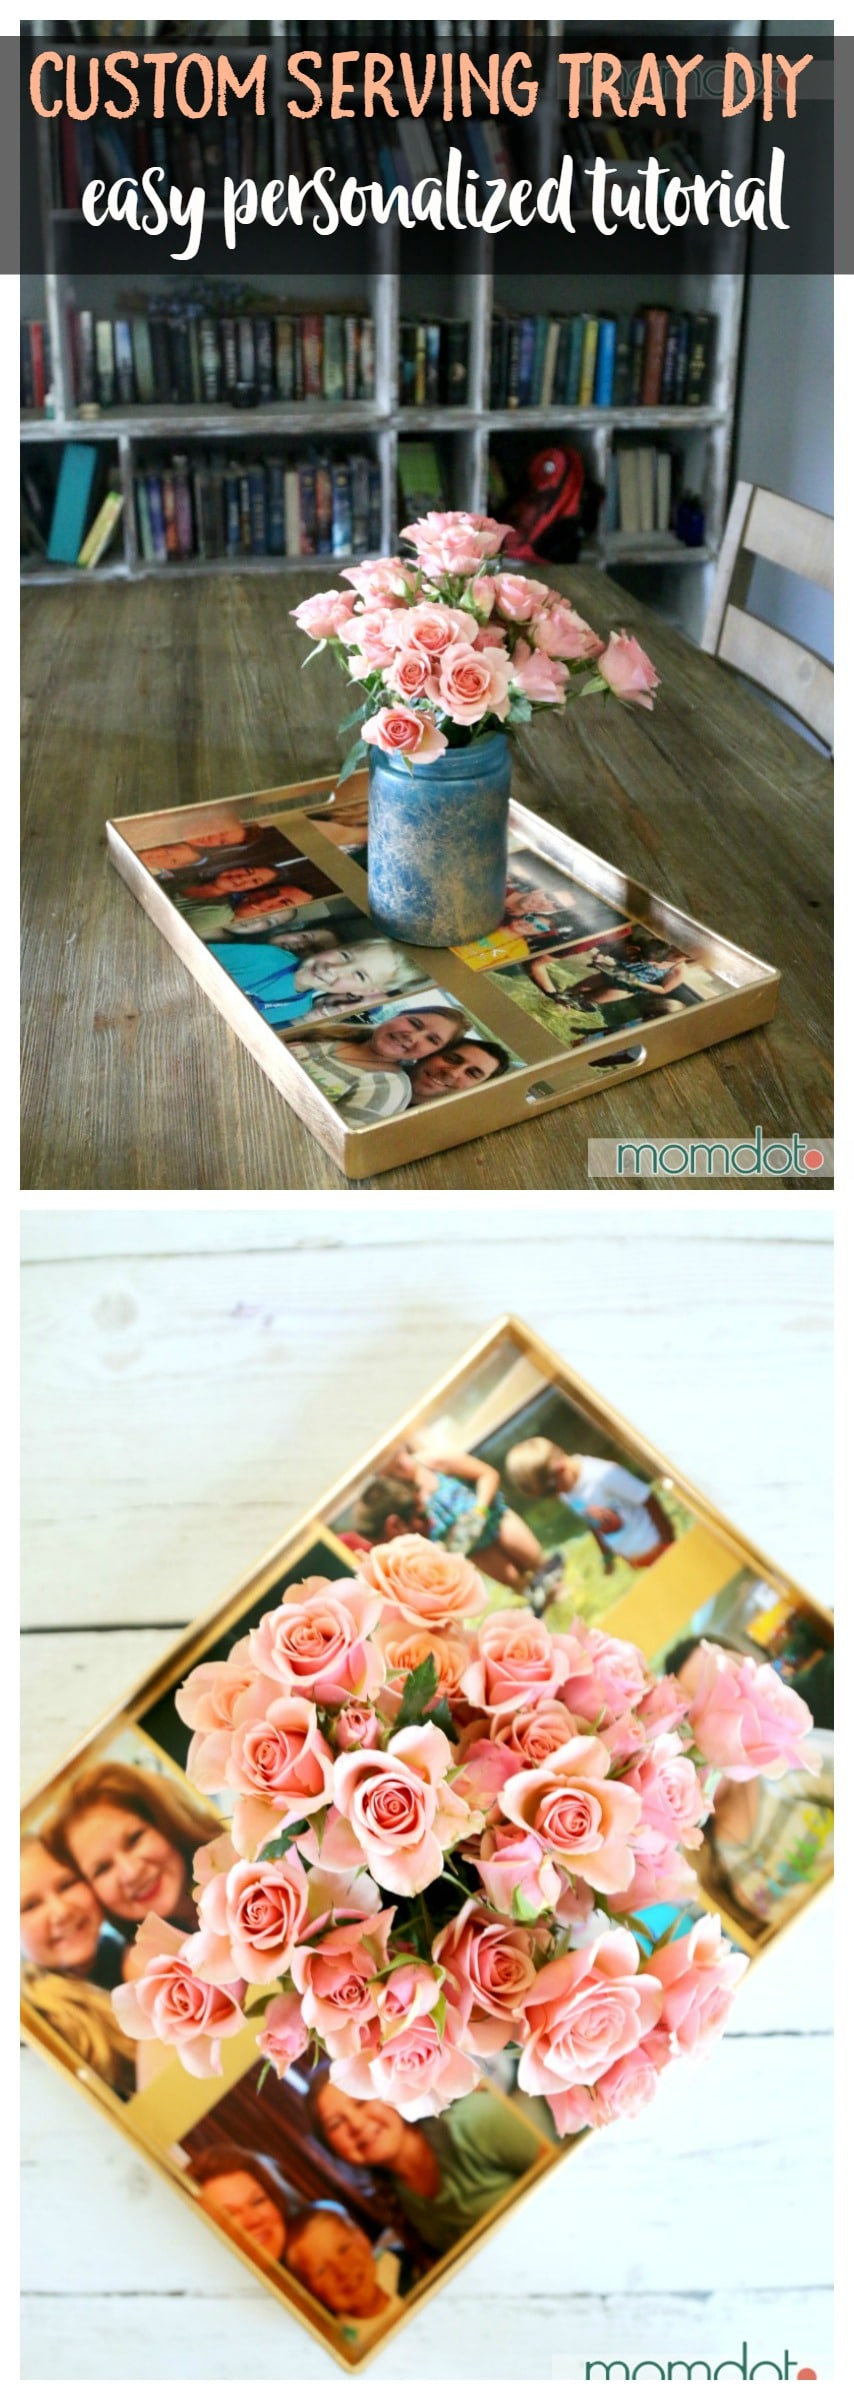 How To take an ordinary tray into a custom photo serving tray for a centerpiece or gift in under 5 minutes - . Plus bonus tutorial included on how to marbelize a vase (all great gifts for mom!)